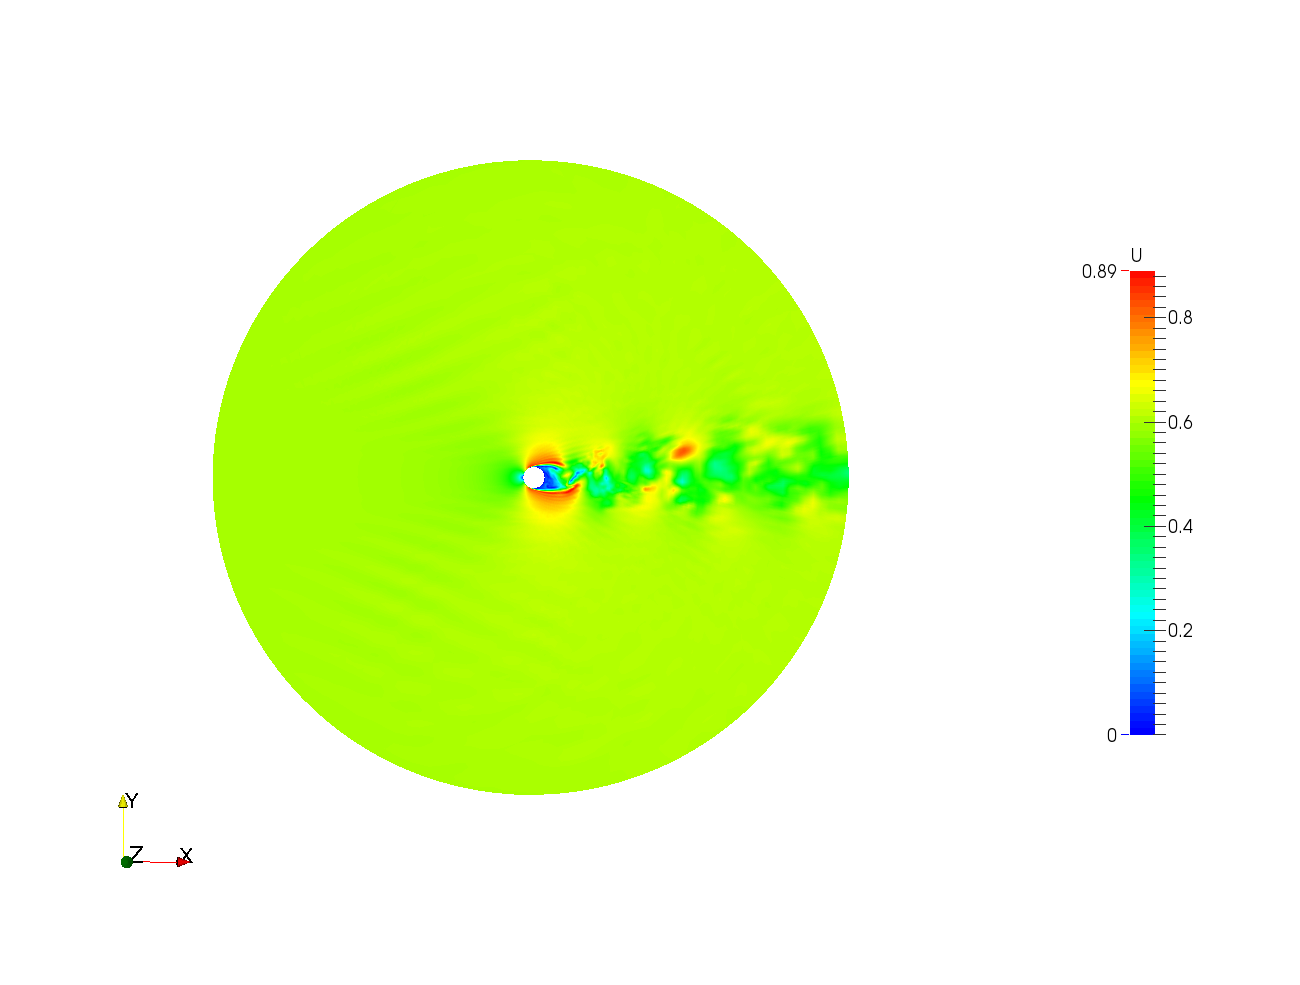 Large Eddy Simulation of Flow over Cylinder Validation